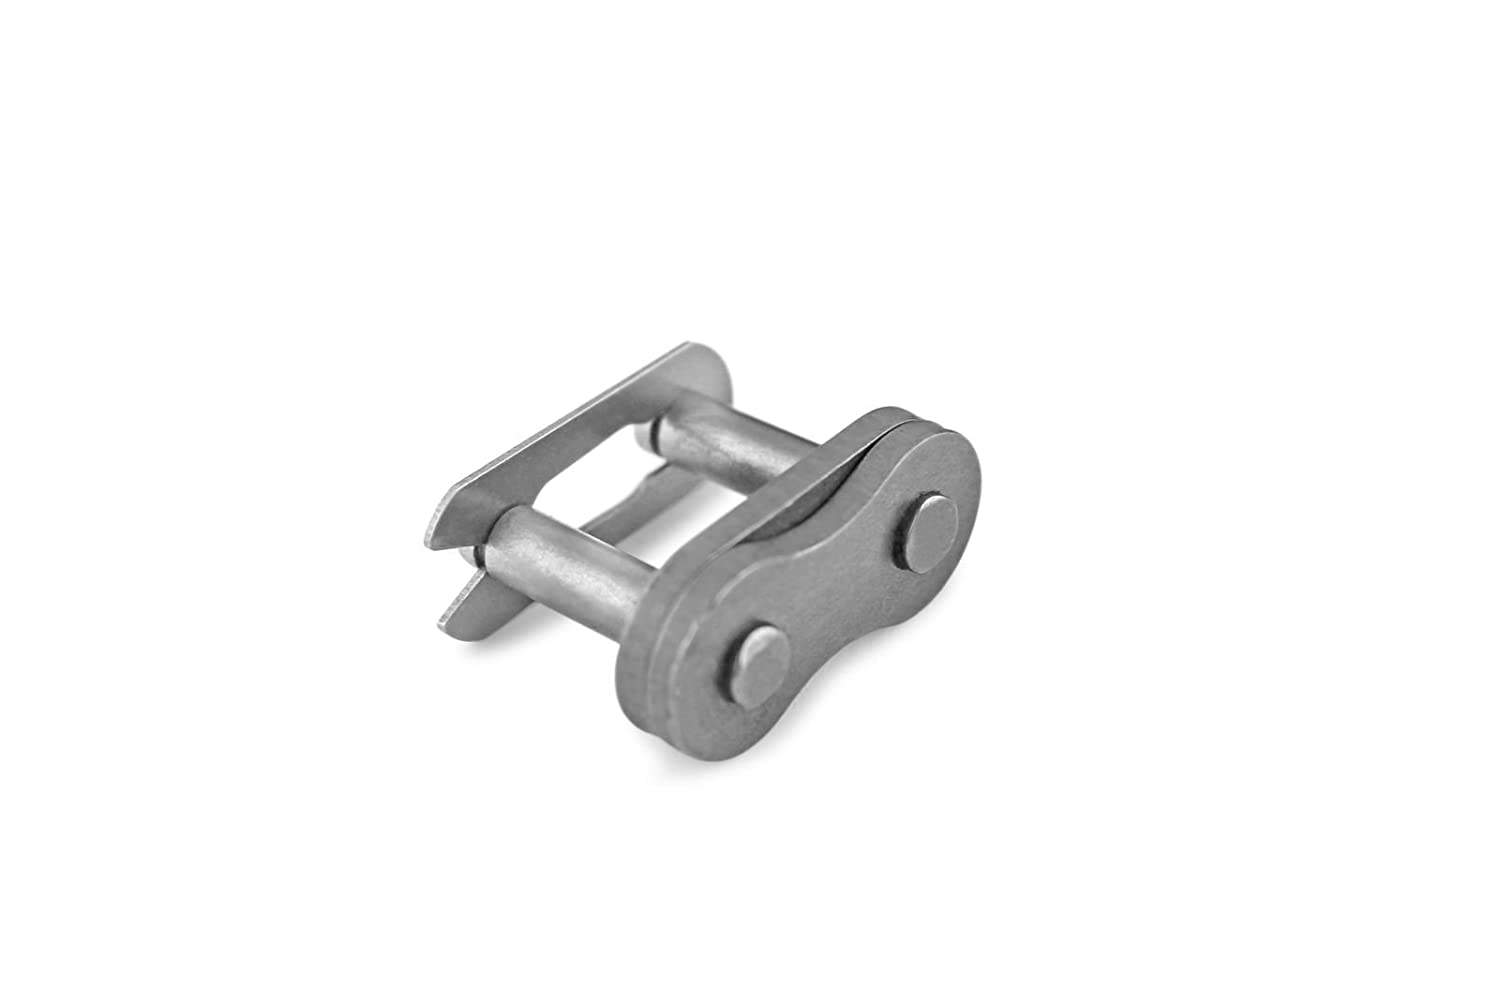 80H-1 Connecting Link 1' Carbon Steel spring clip 4 Pcs HHM